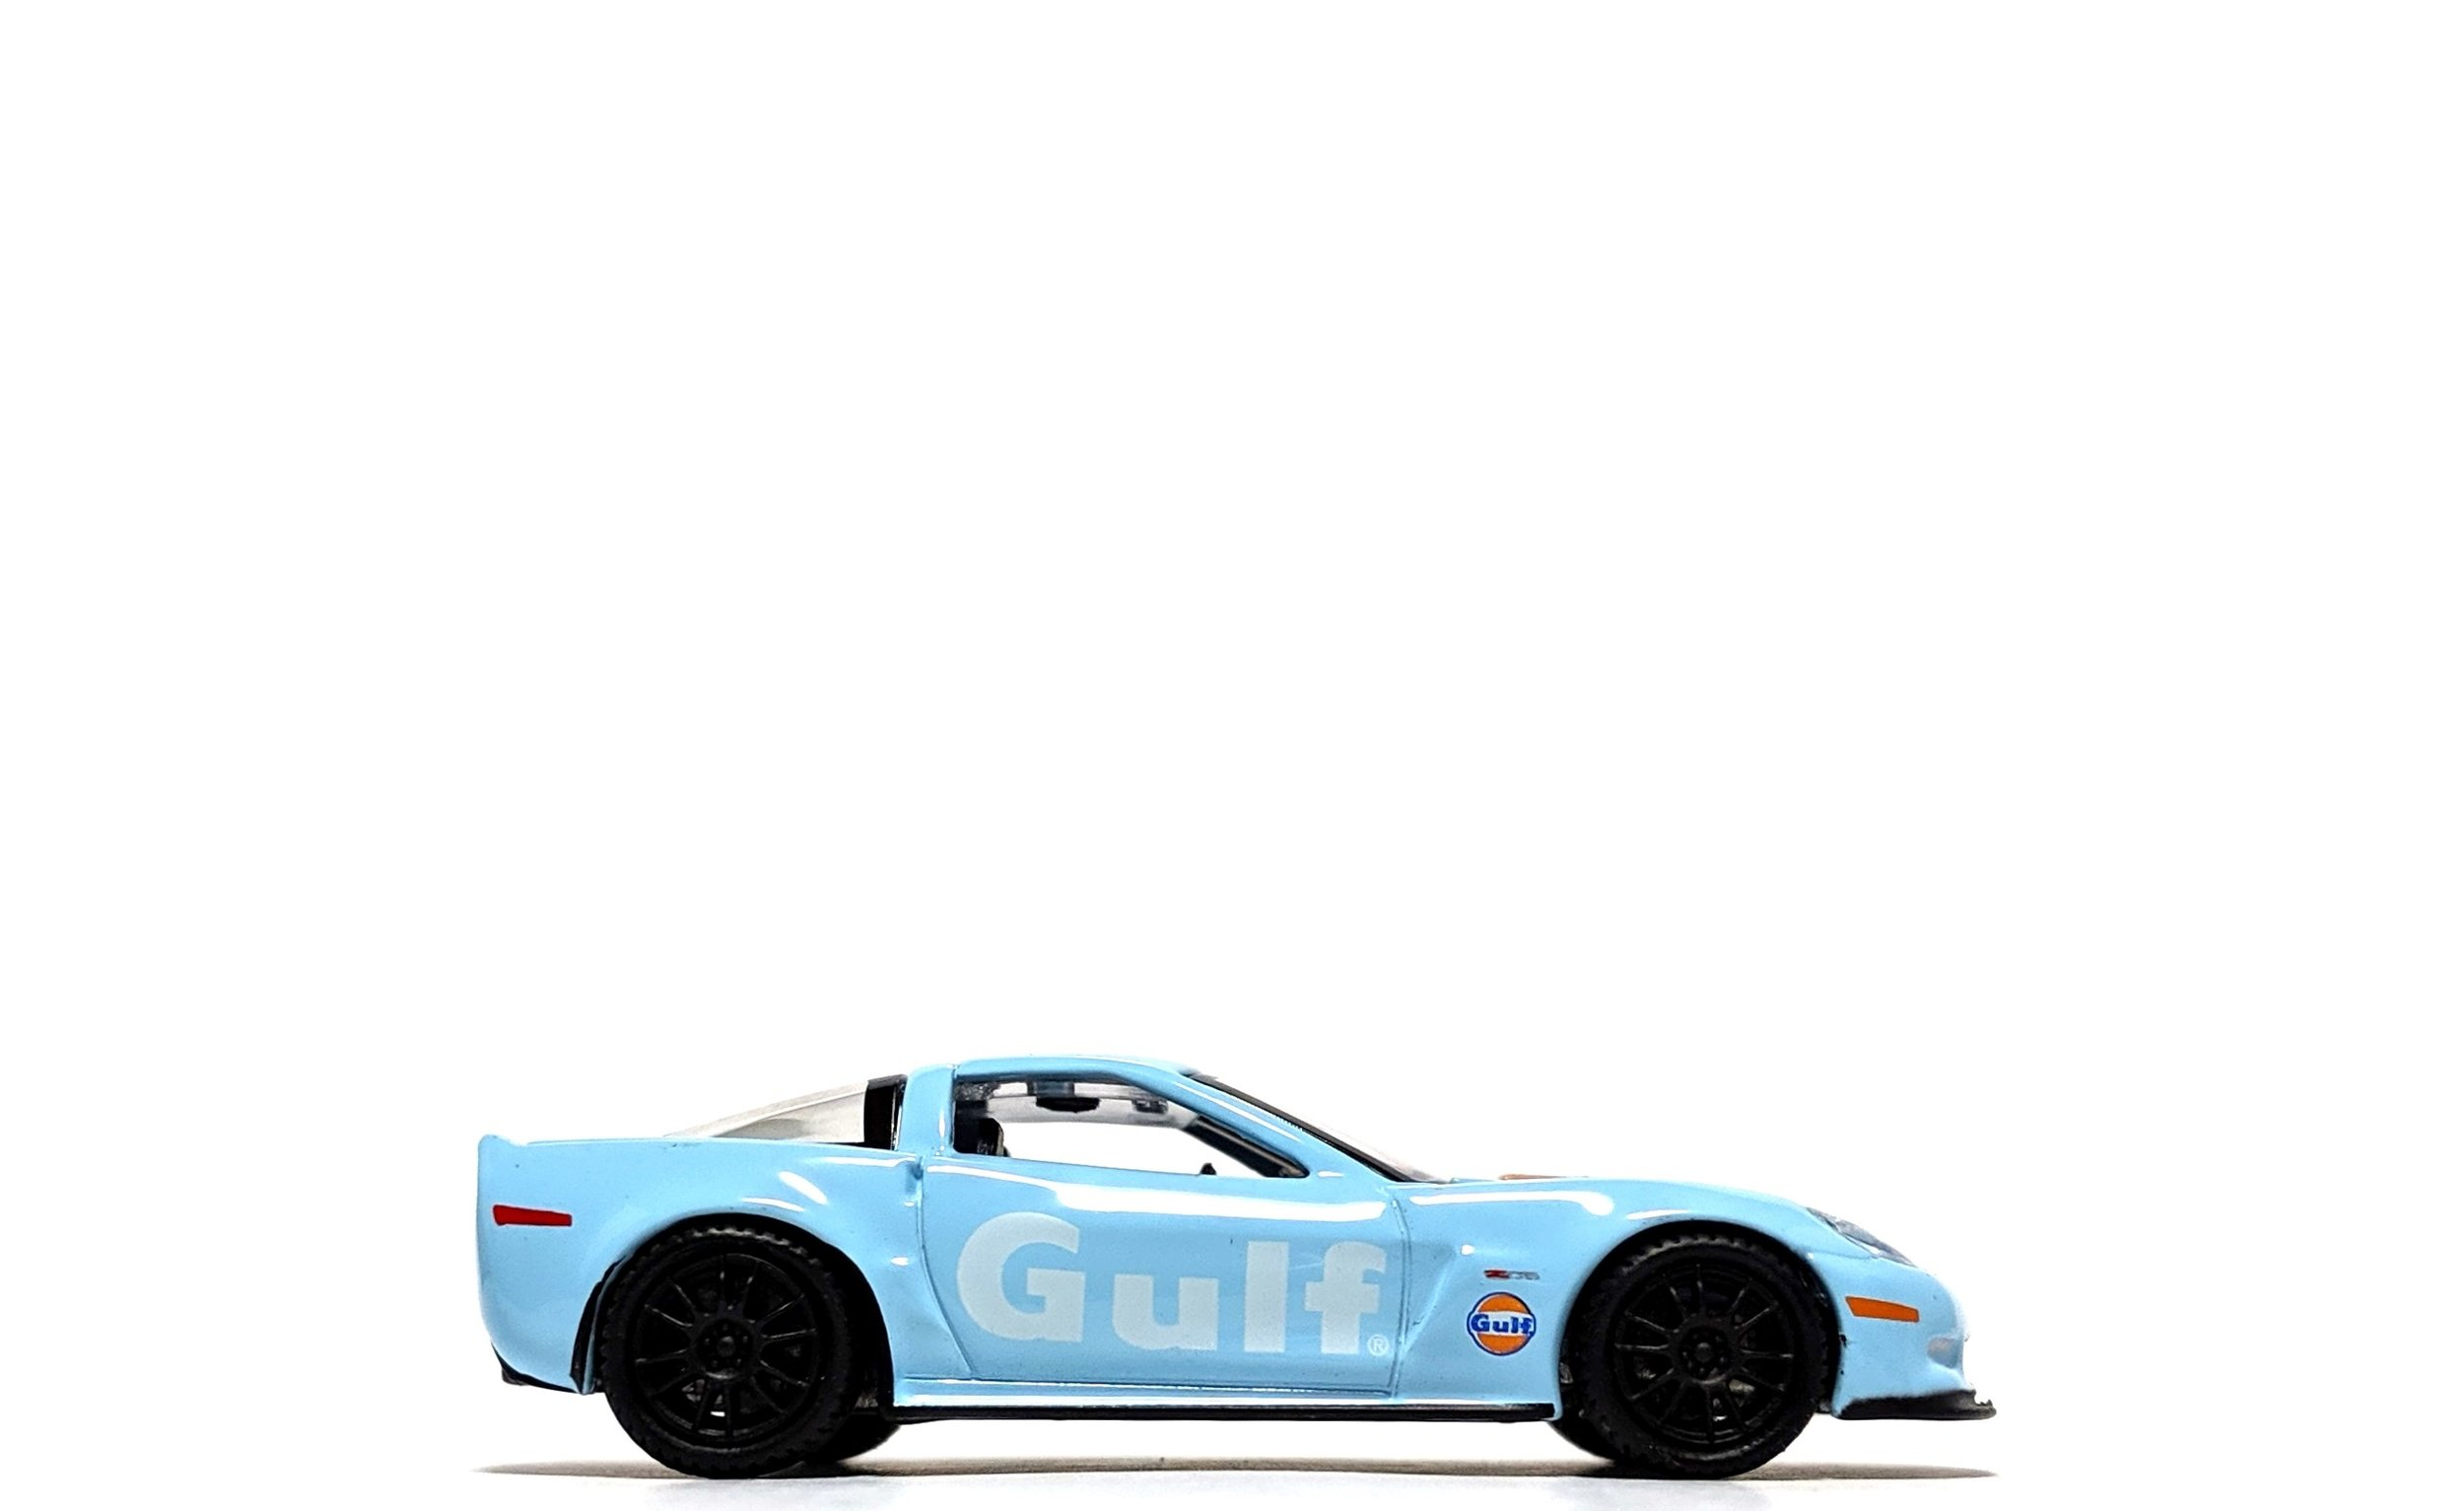 "2011 Chevrolet Corvette Z06 ""Gulf Oil"" Light Blue - Auto World"